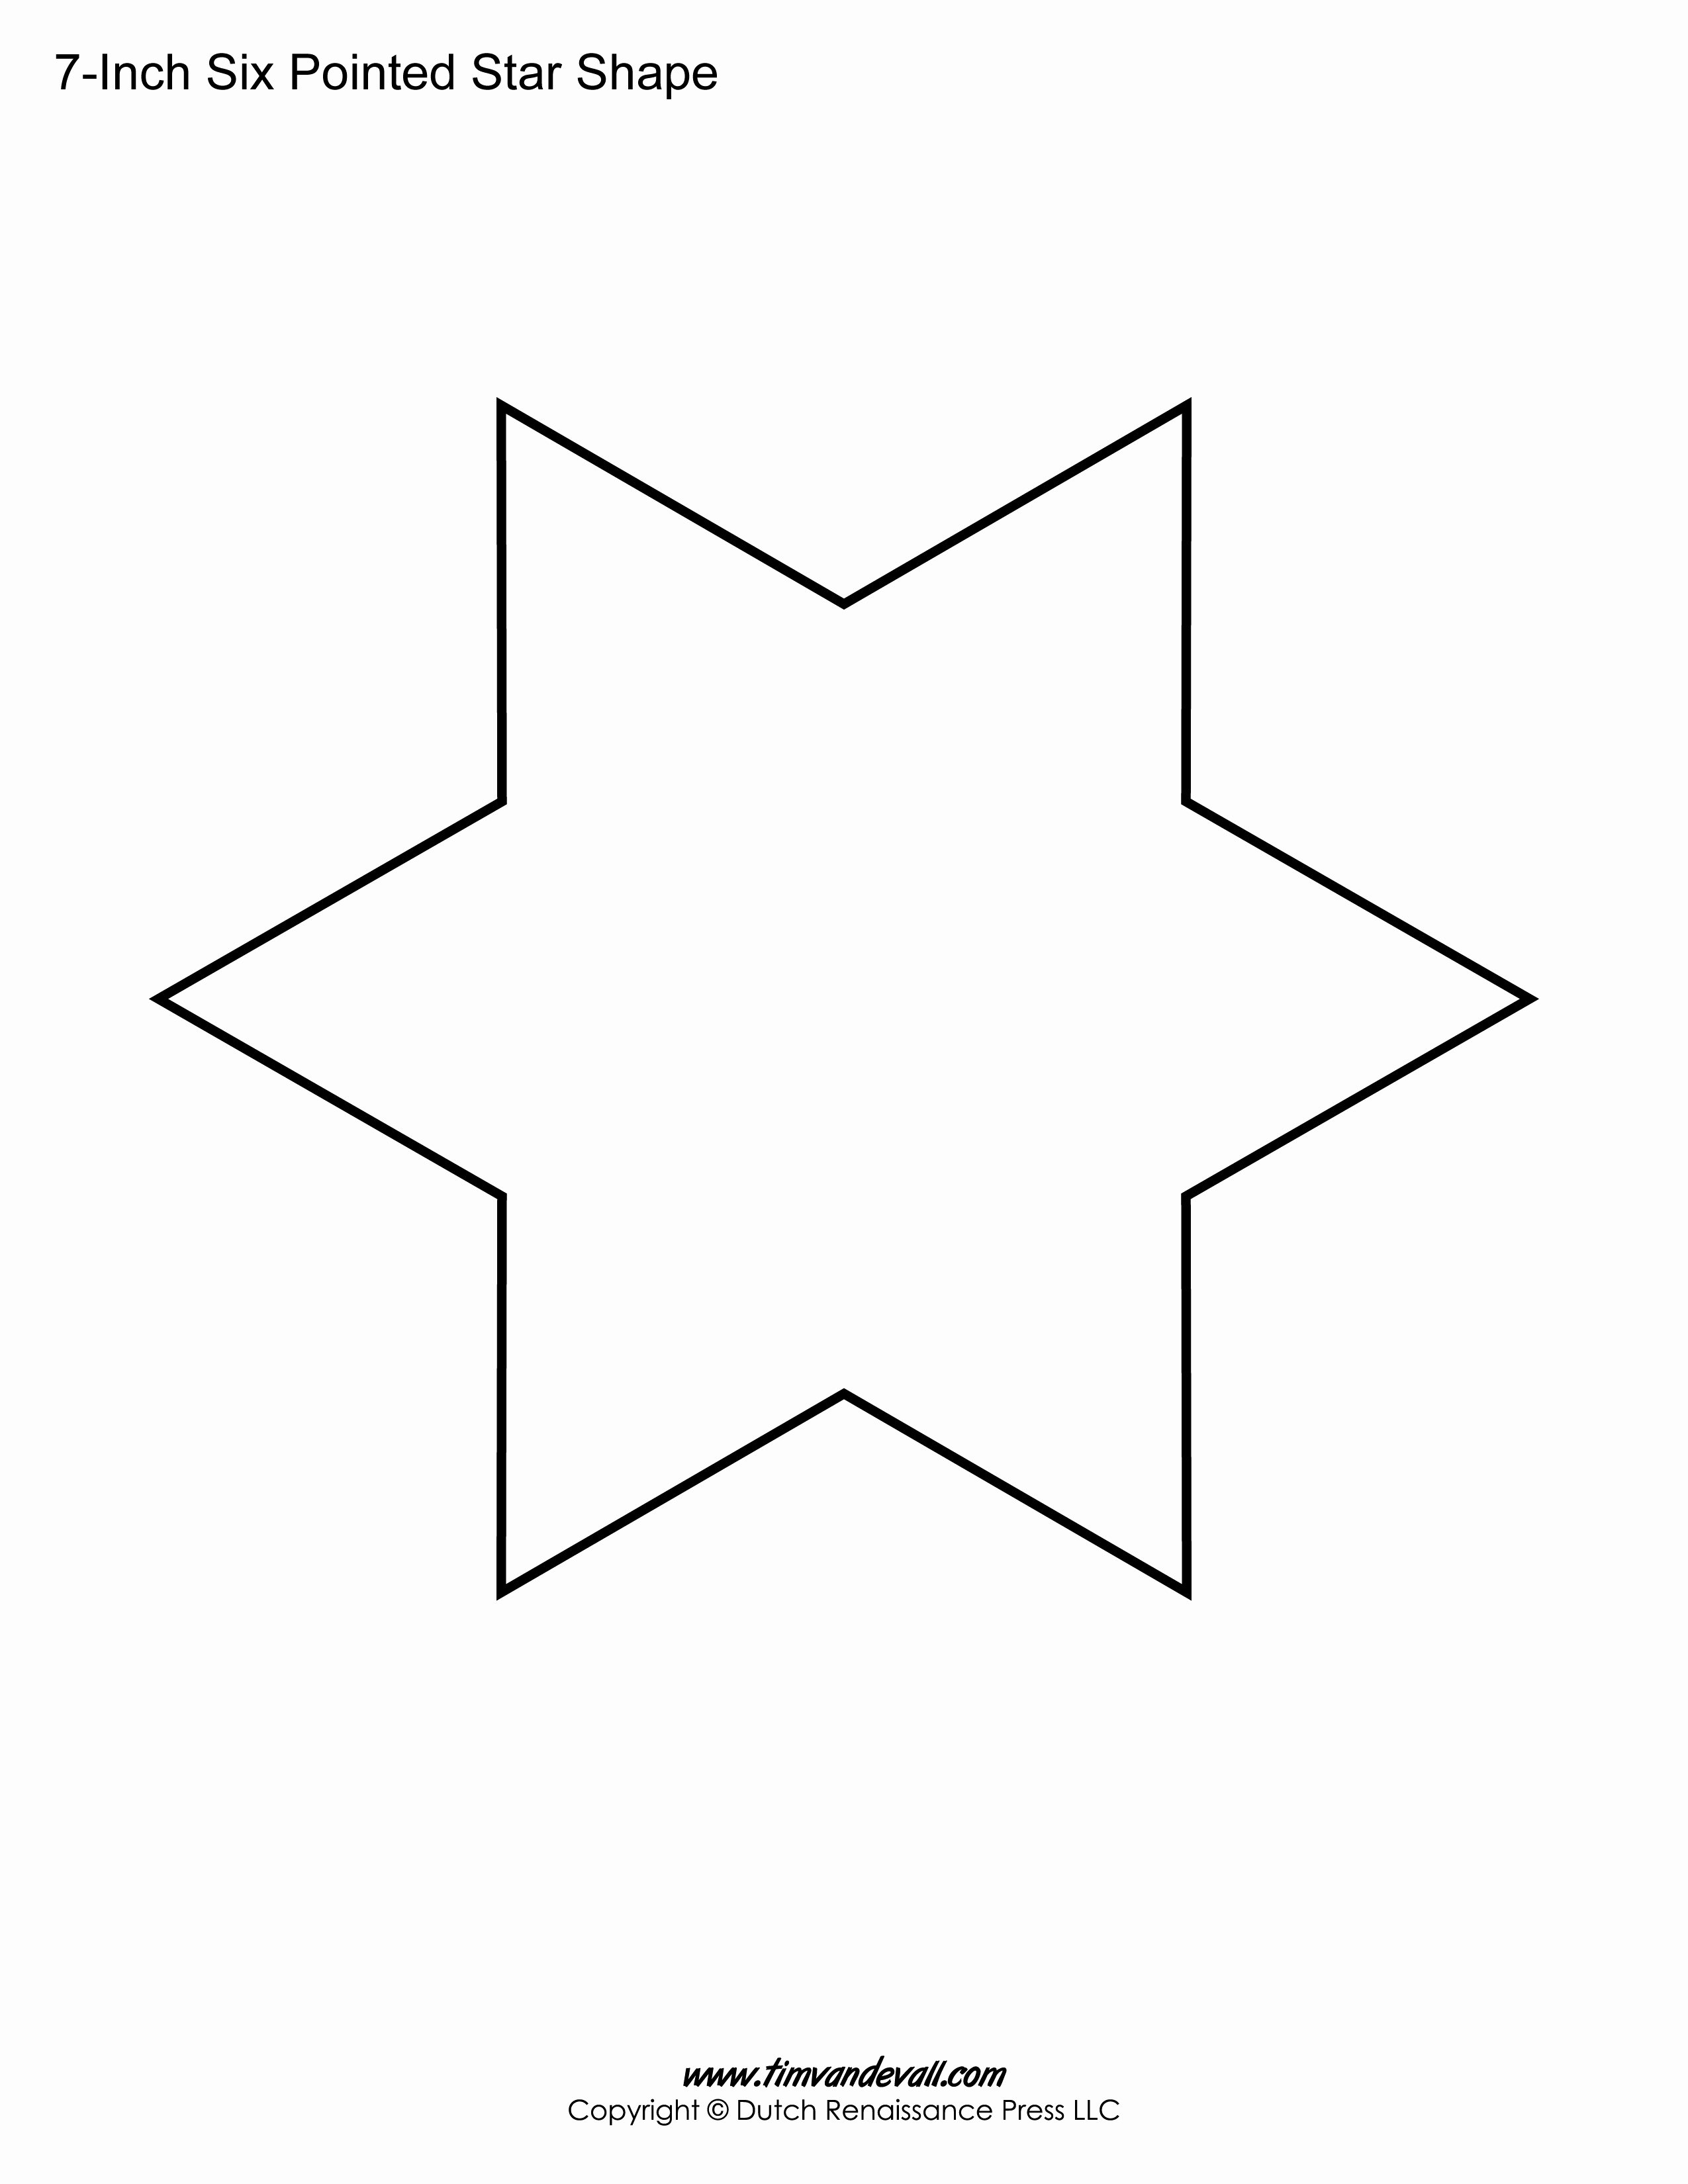 6 Inch Star Elegant Printable Six Pointed Star Templates – Tim S Printables